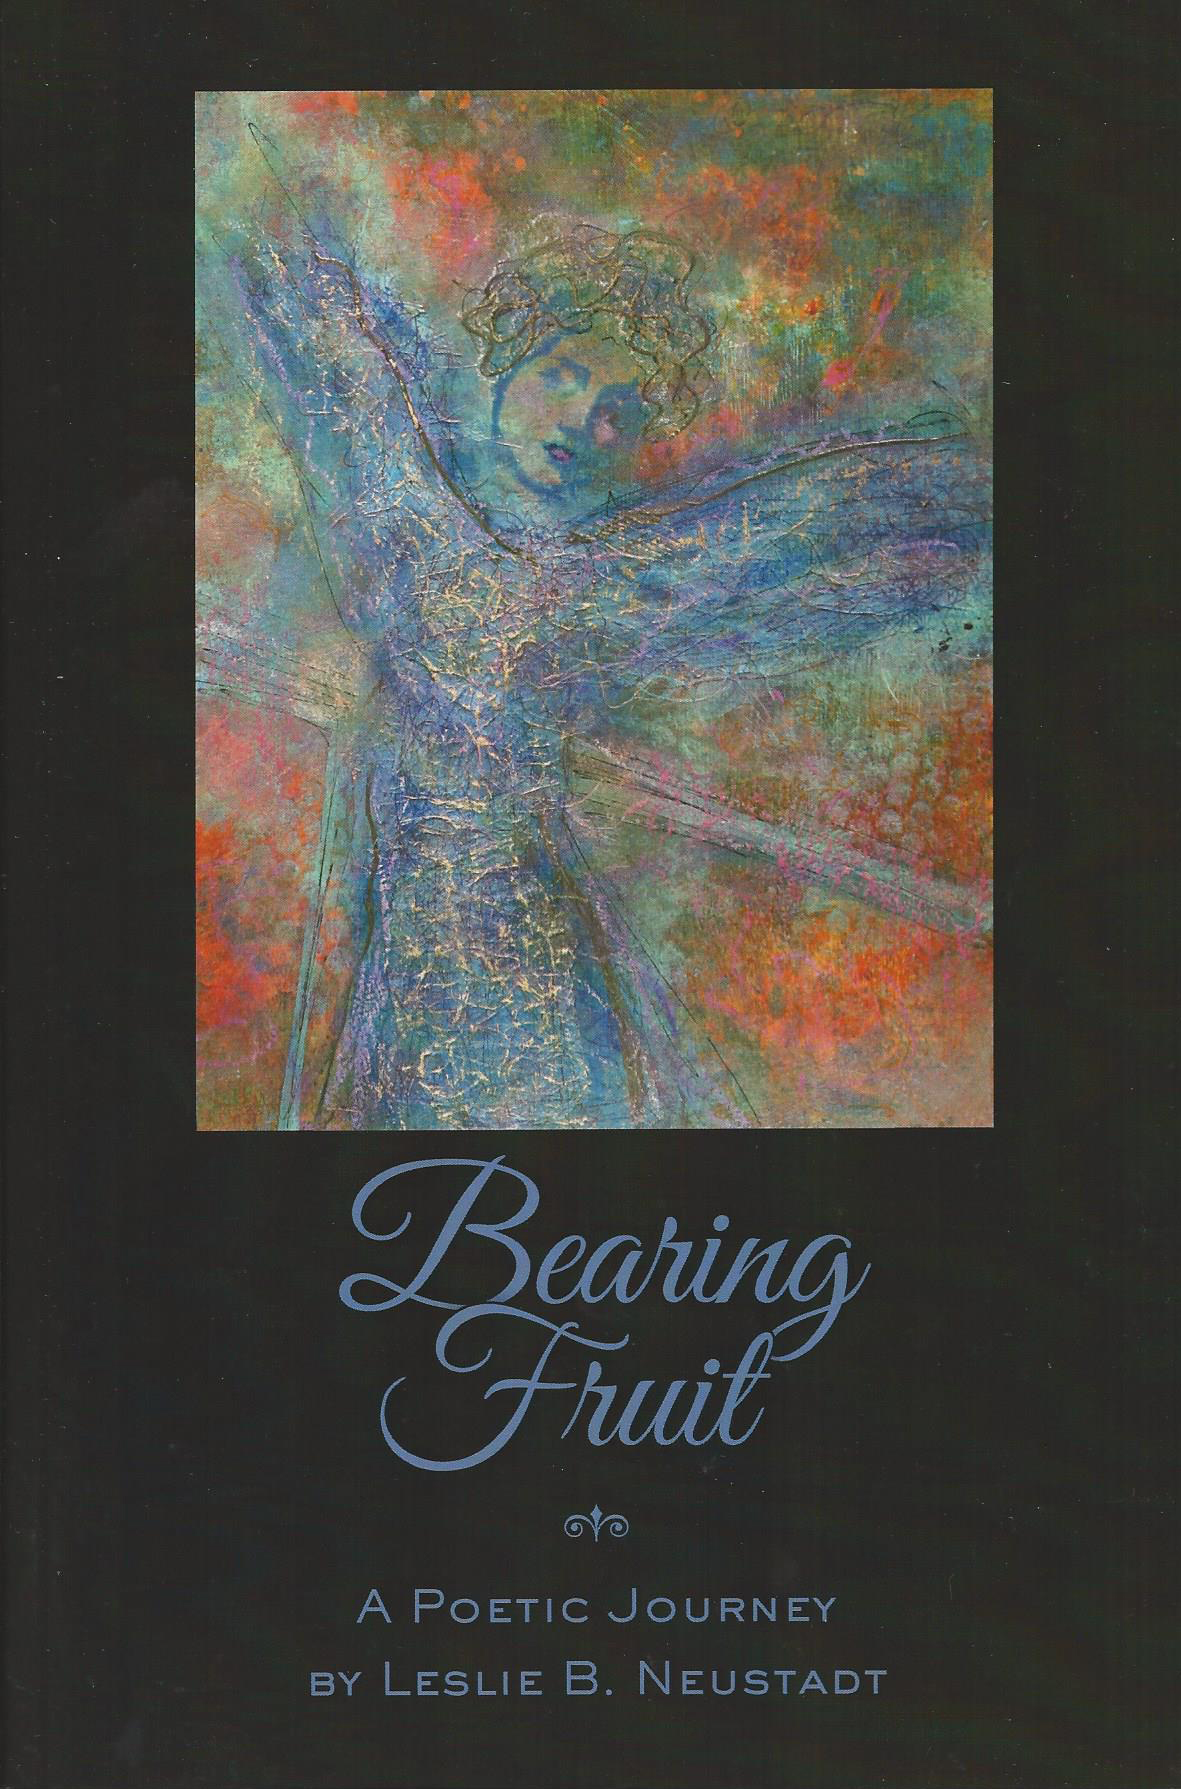 A note from Leslie : Joan Heffler, who photographed the  Bearing Fruit  book cover, my author photo and select pieces of artwork on this site, is an exceptionally fine photographer and dear friend. I highly recommend Joan to anyone seeking commercial photography services.  JoanHefflerPhotography.com .